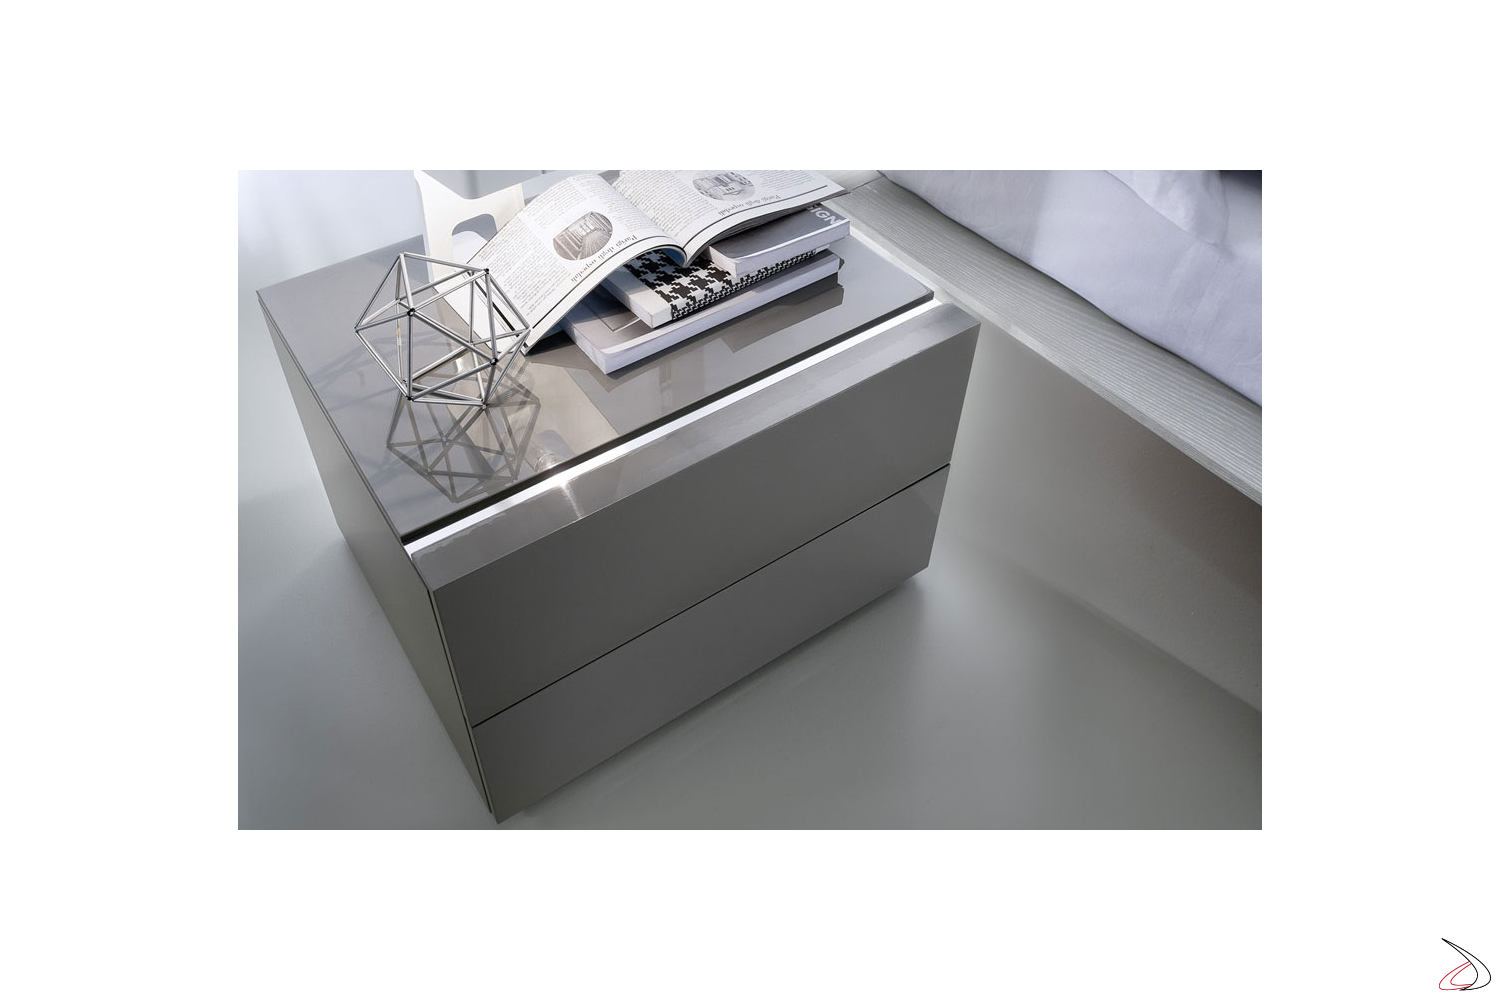 Design nightstand with 2 drawers for the bedroom